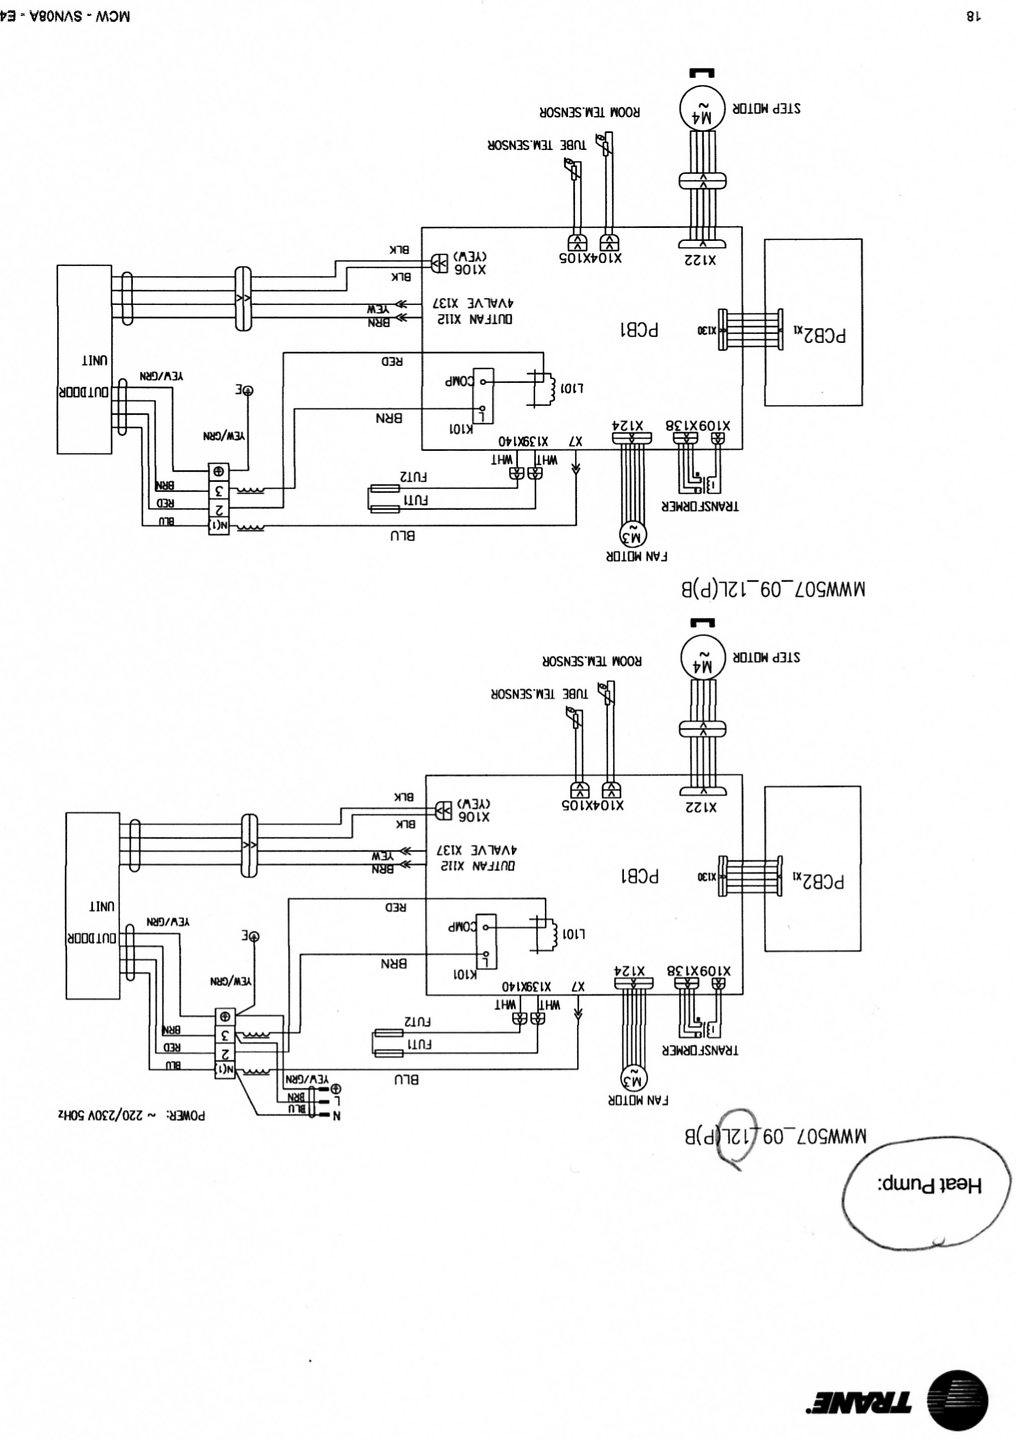 Wiring Diagram Trane Split System Best Electrical Circuit Mitsubishi Mini How Do I Connect 2 2mww0512e1000aa To 1 2twd0524a1aa Rh Justanswer Com Carrier Diagrams Hvac